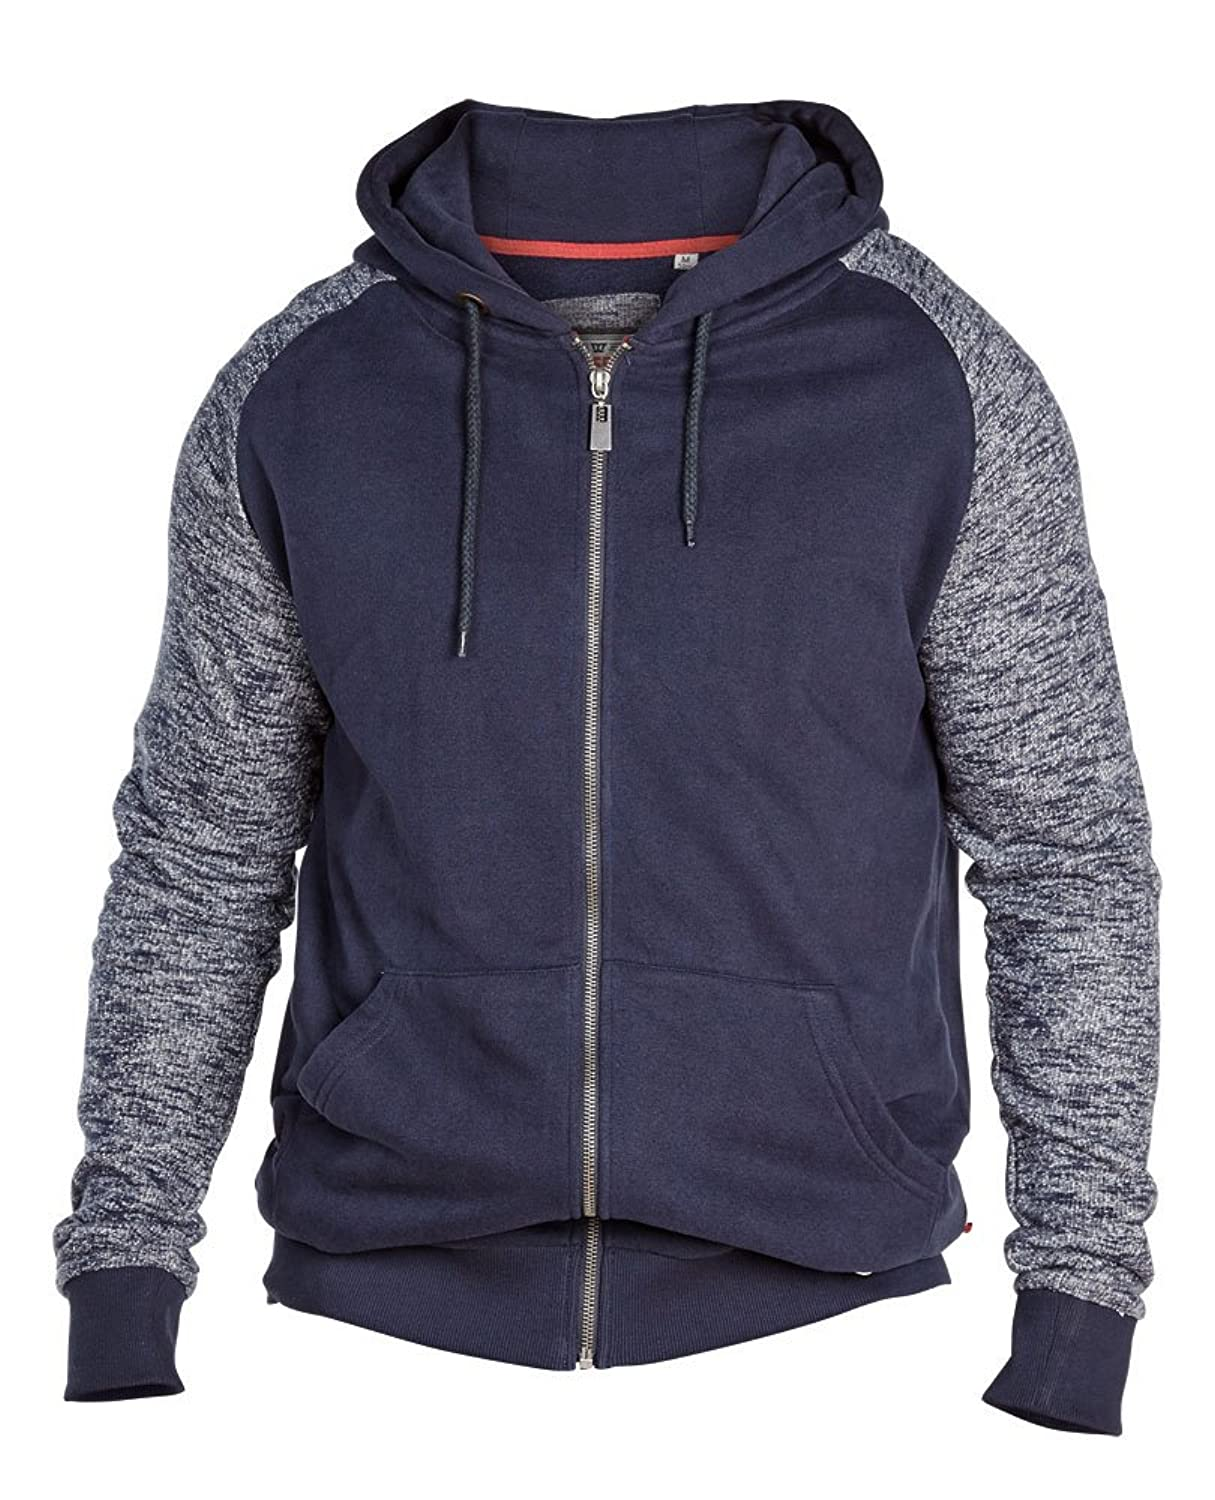 D555 Hoodie with Contrast Sleeves, Navy Blue 3XL - 6XL